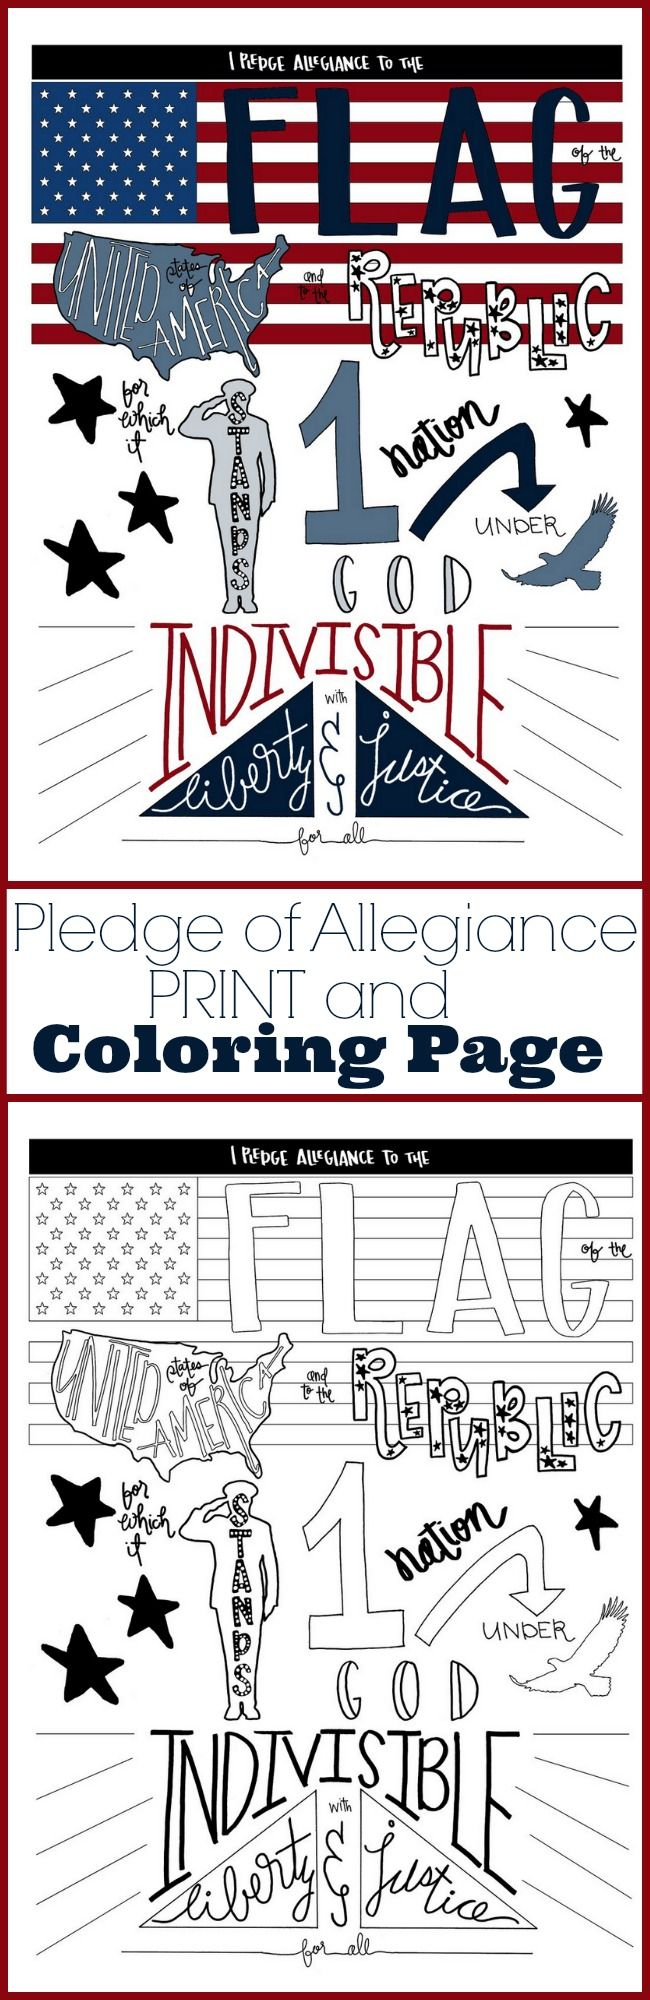 Free coloring pages for fourth of july - A Hand Lettered Pledge Of Allegiance Coloring Page Printable